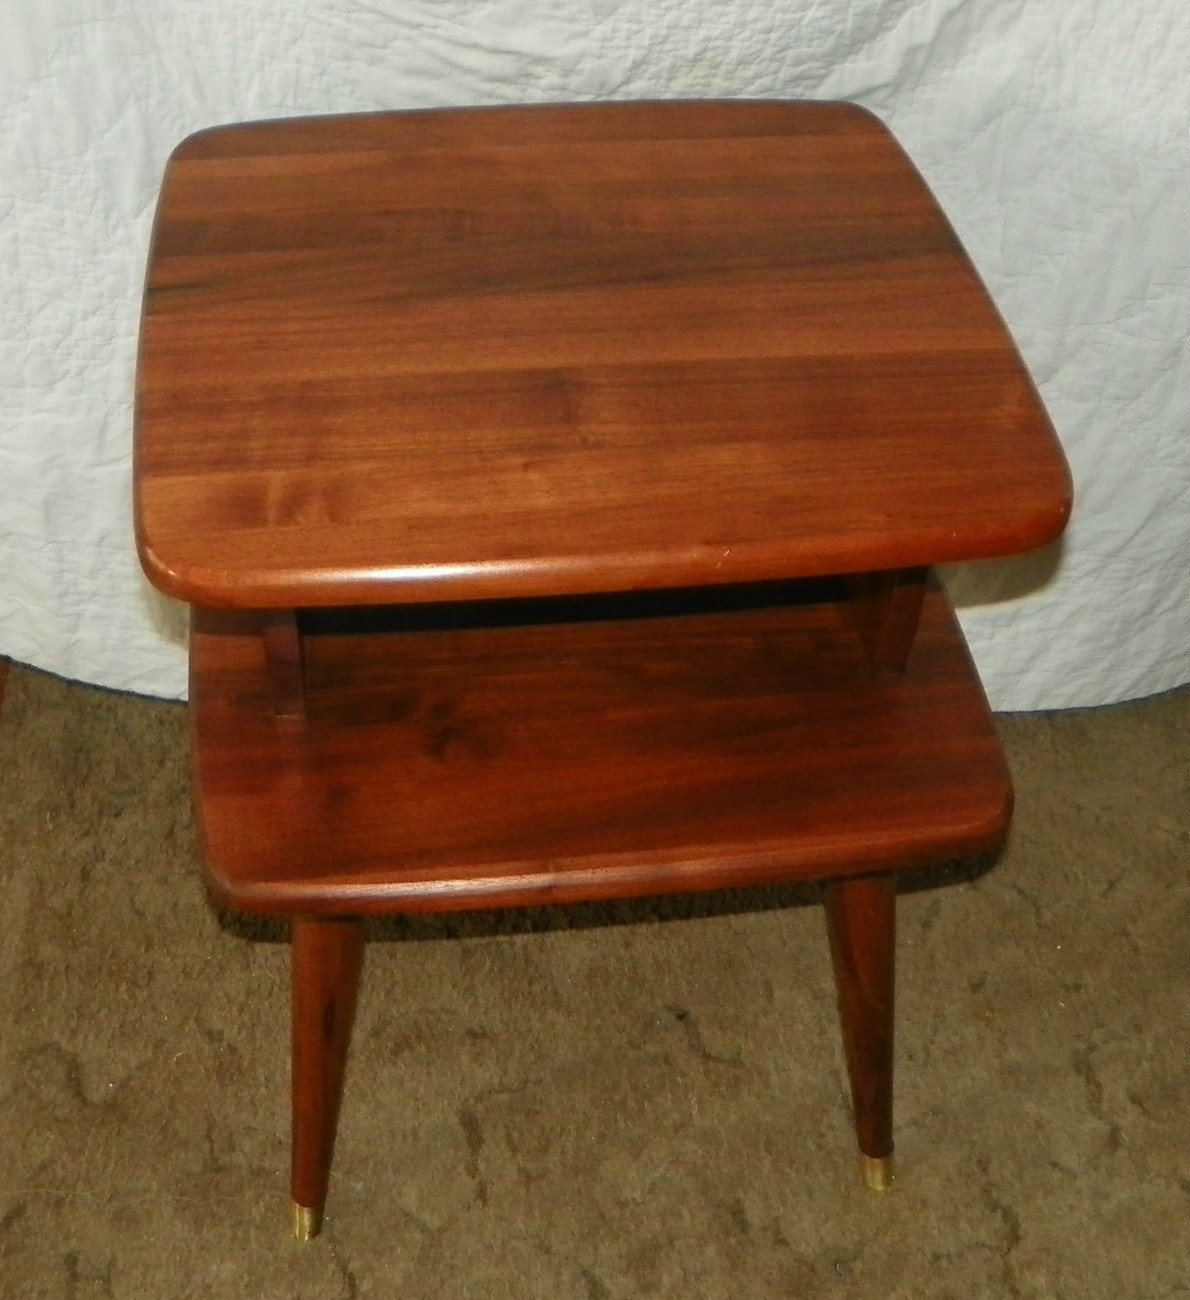 Primary image for Solid Walnut Retro 2 Tier End Table / Side Table  (T50)